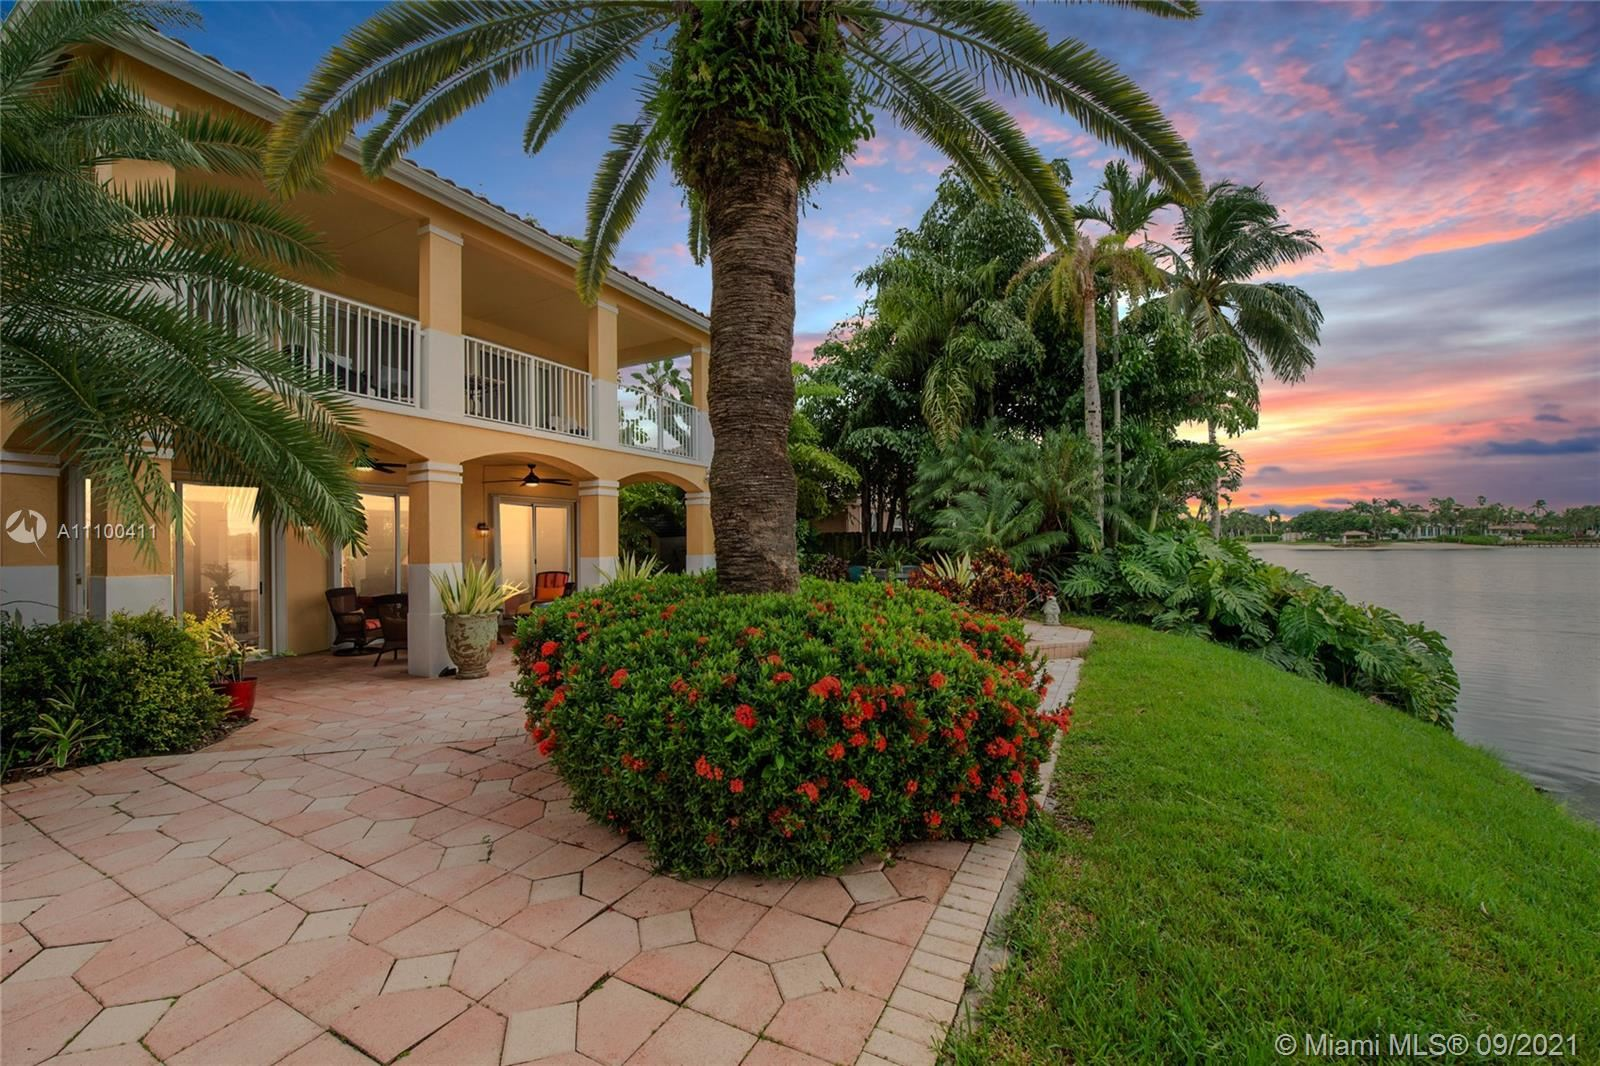 6942 NW 112th Ave, Doral, FL 33178 - #: A11100411